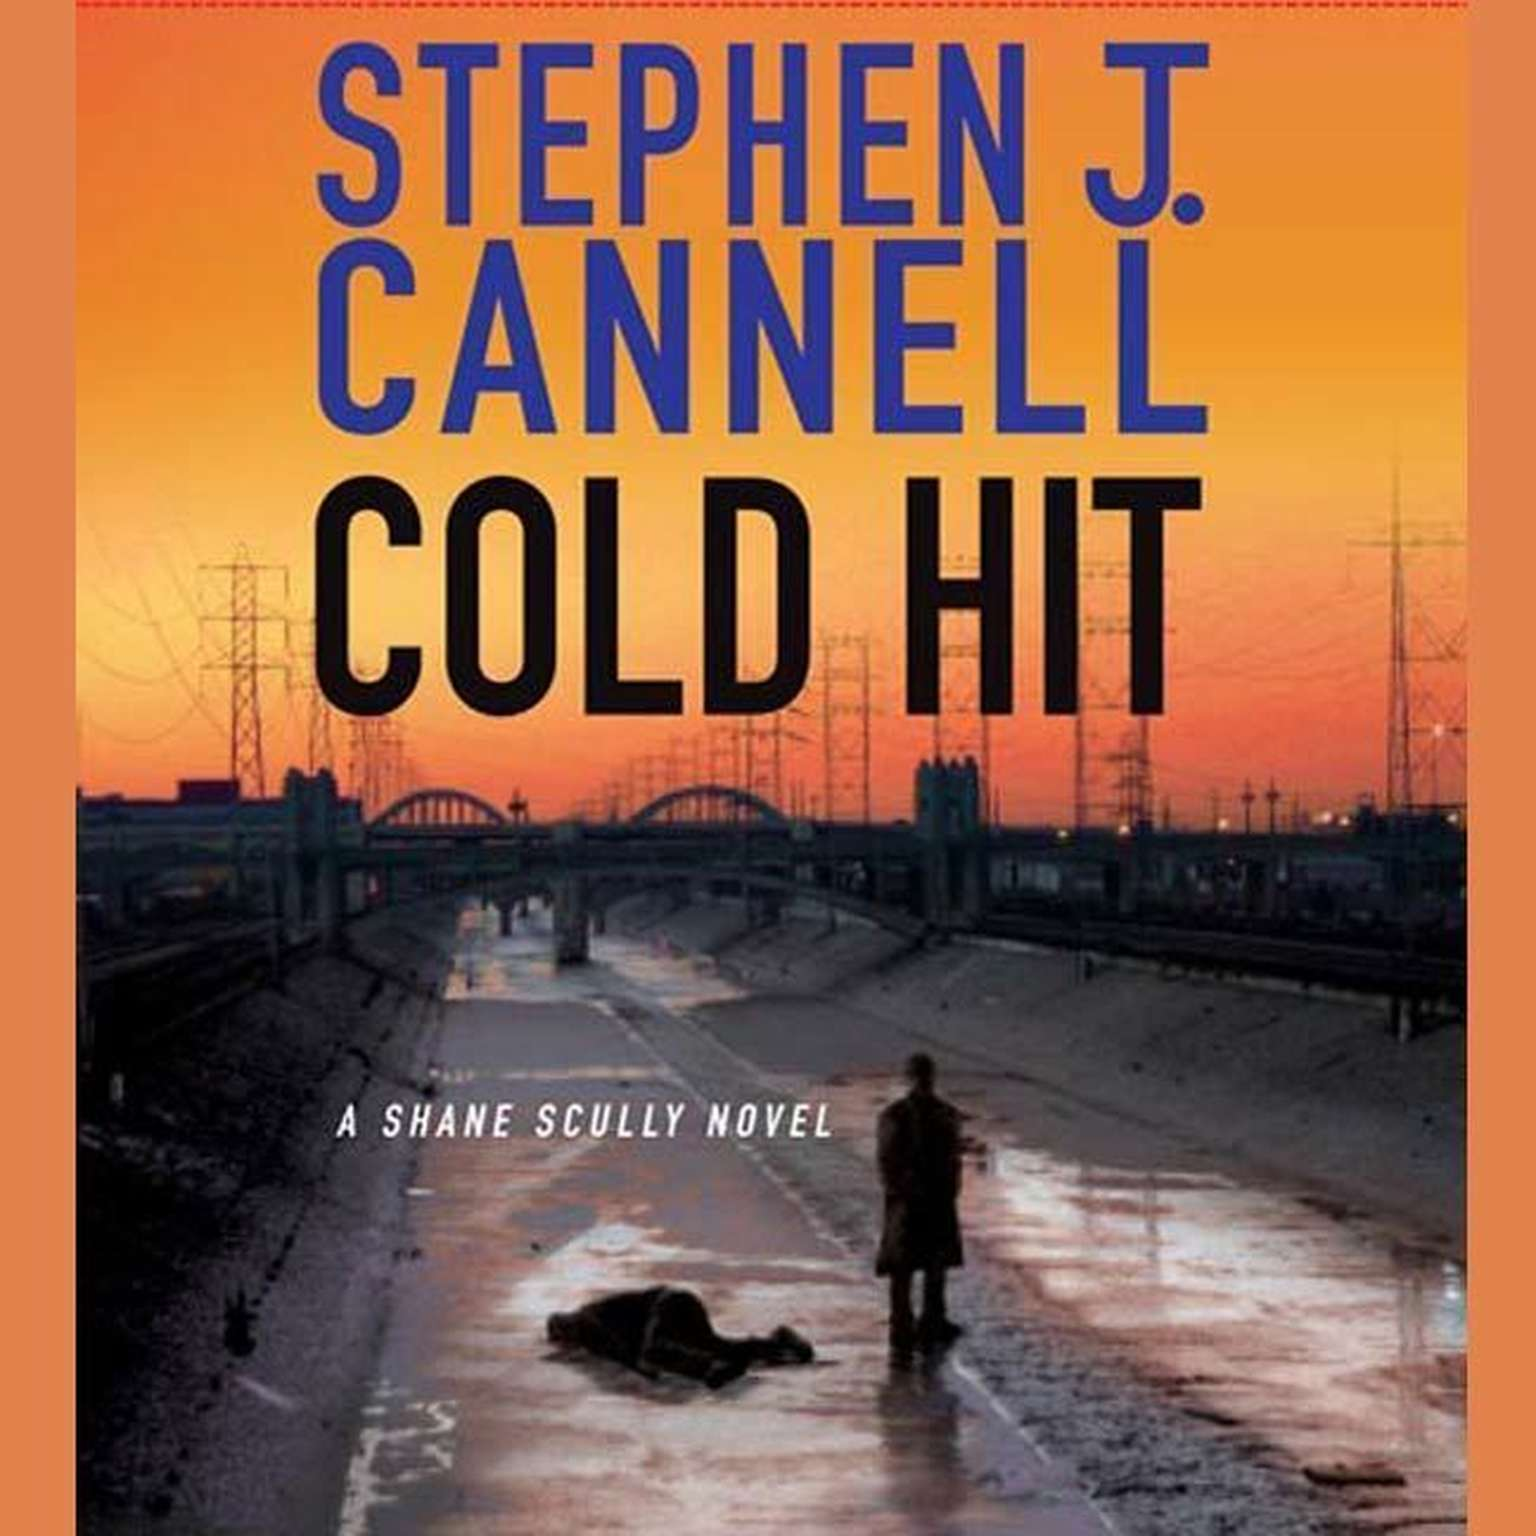 Printable Cold Hit (Abridged): A Shane Scully Novel Audiobook Cover Art